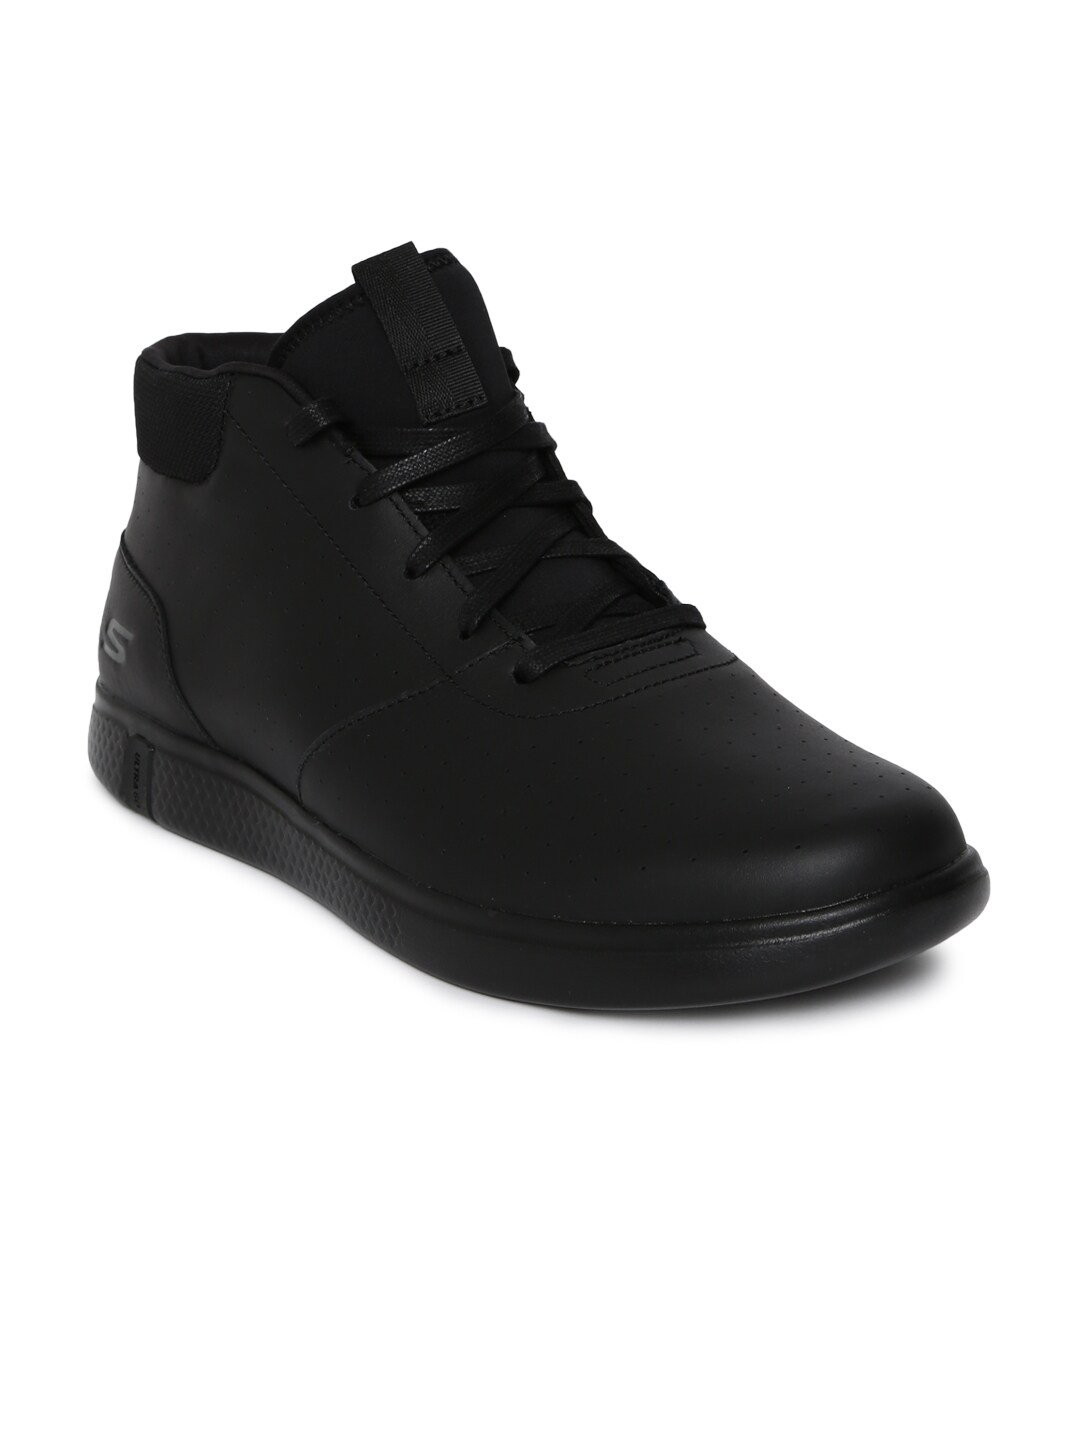 f5d979d750c Leather Footwear Sports Shoes - Buy Leather Footwear Sports Shoes online in  India